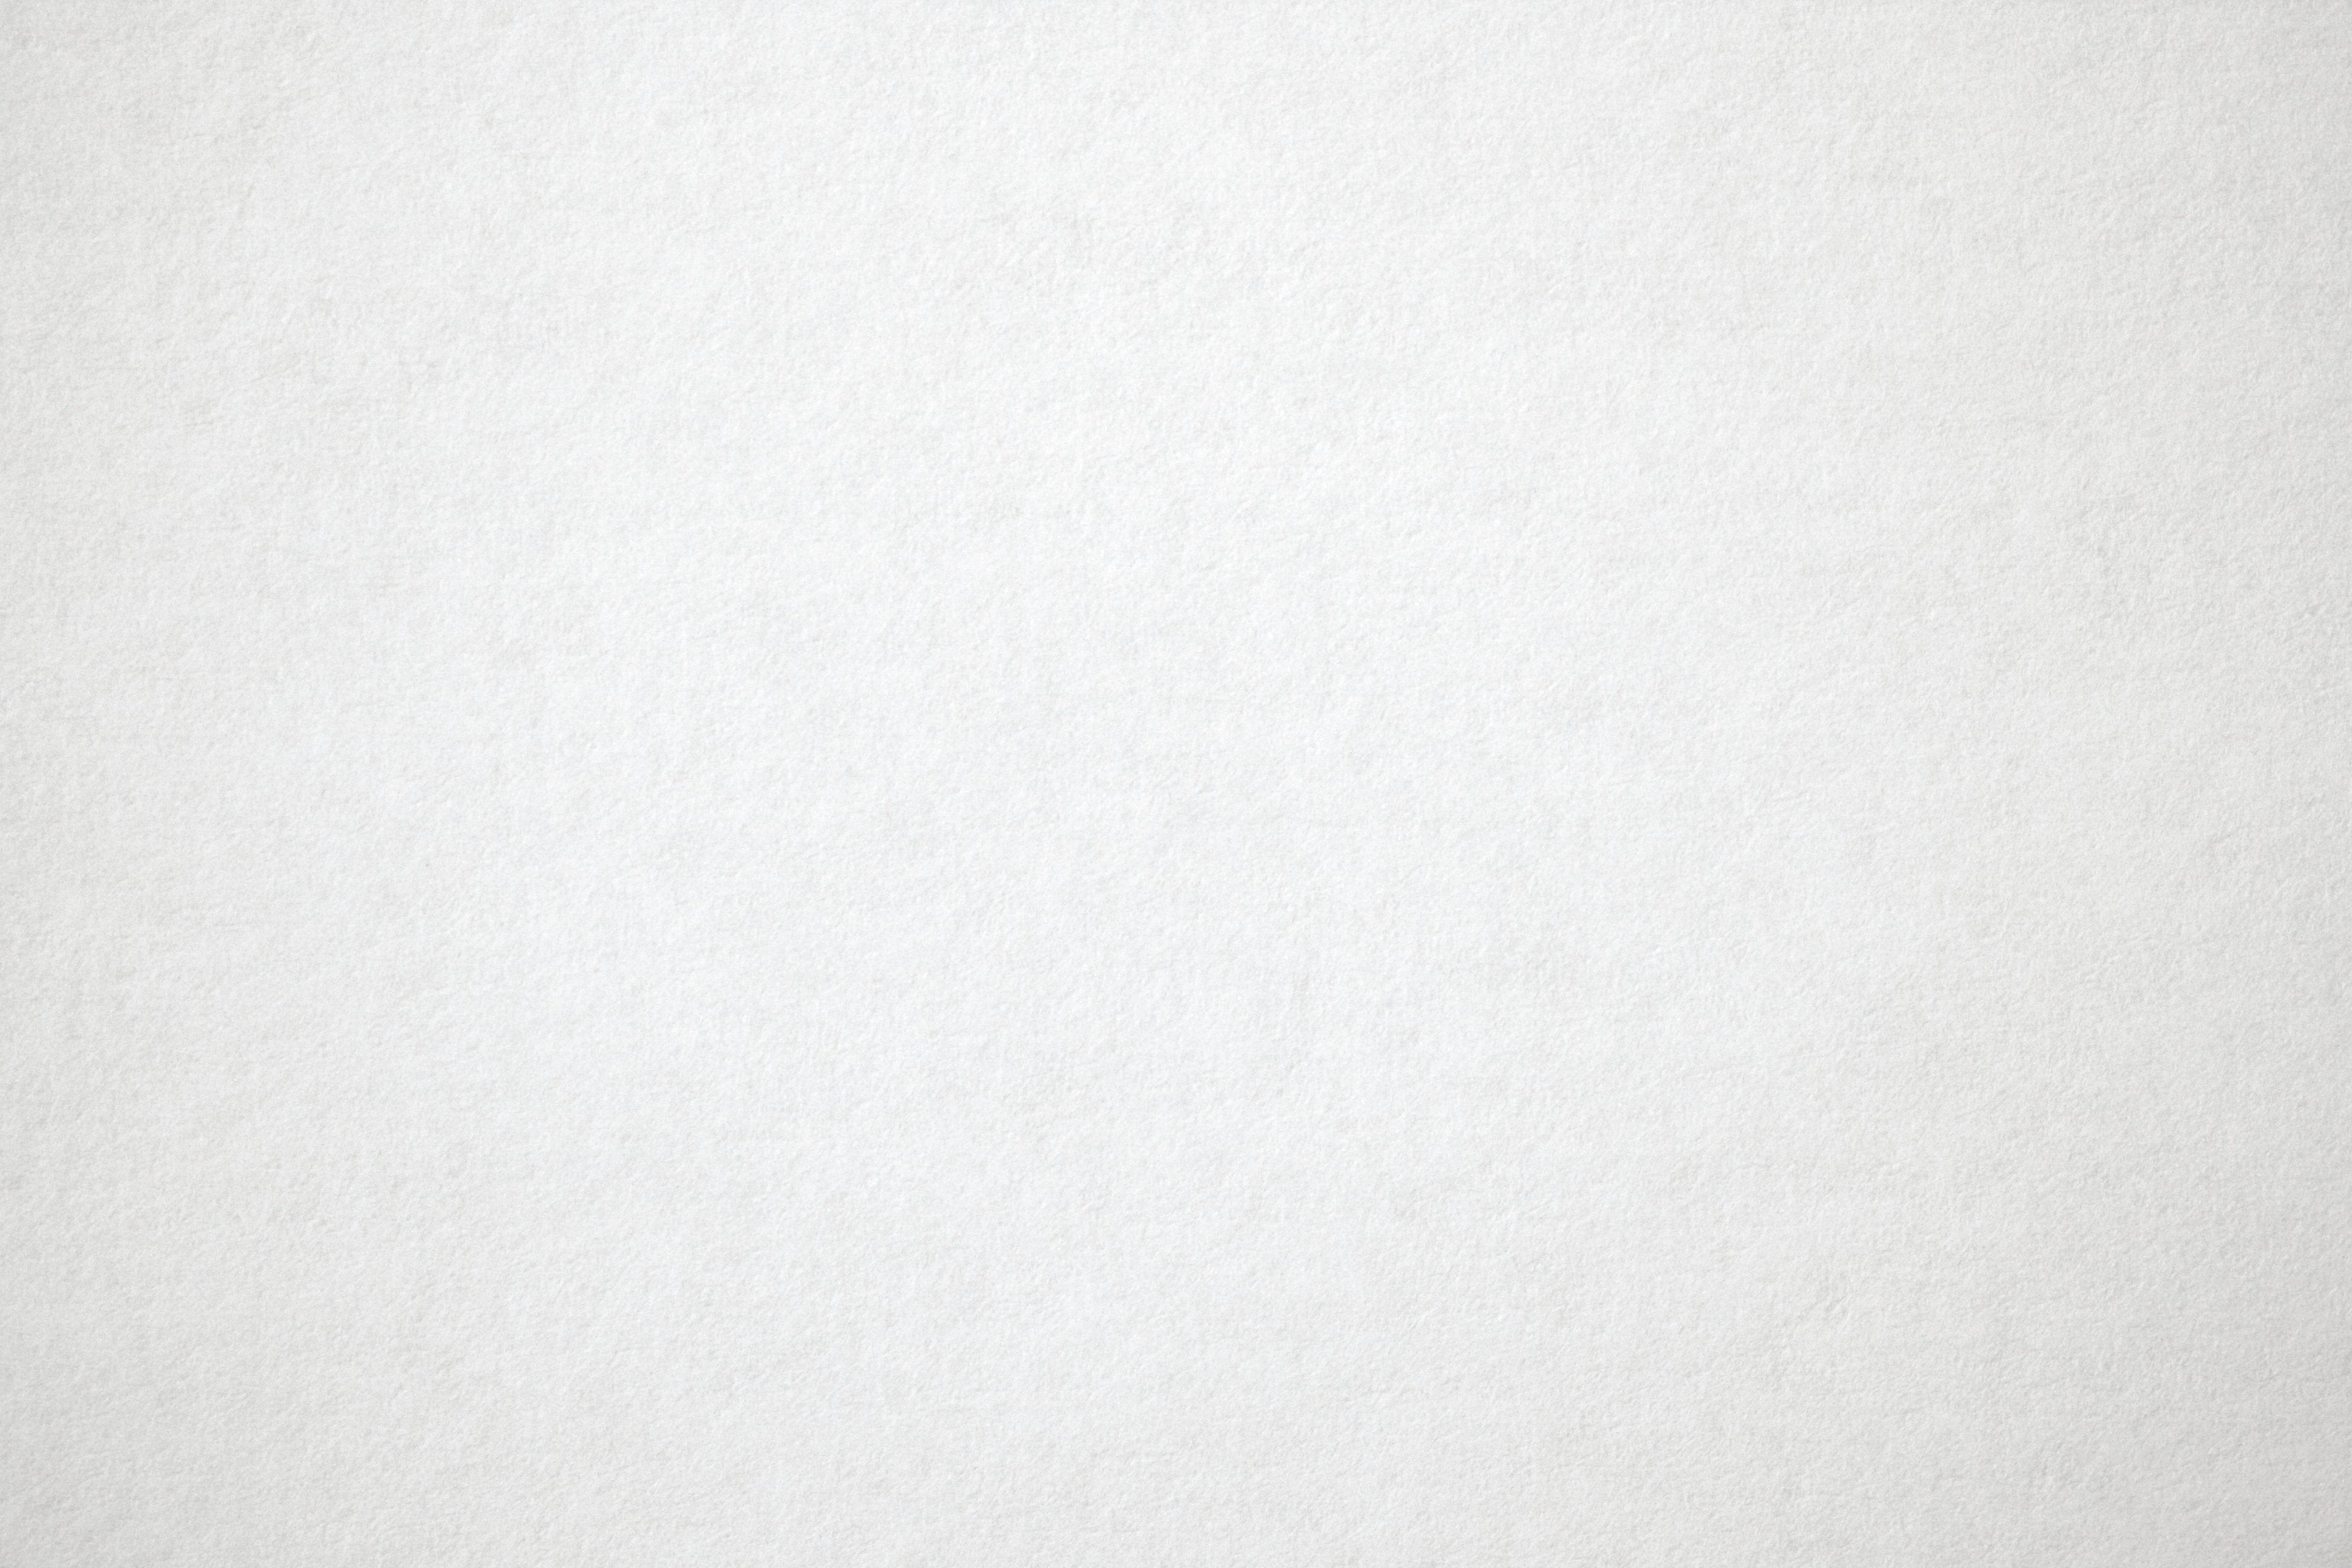 White Paper Texture Picture | Free Photograph | Photos ...